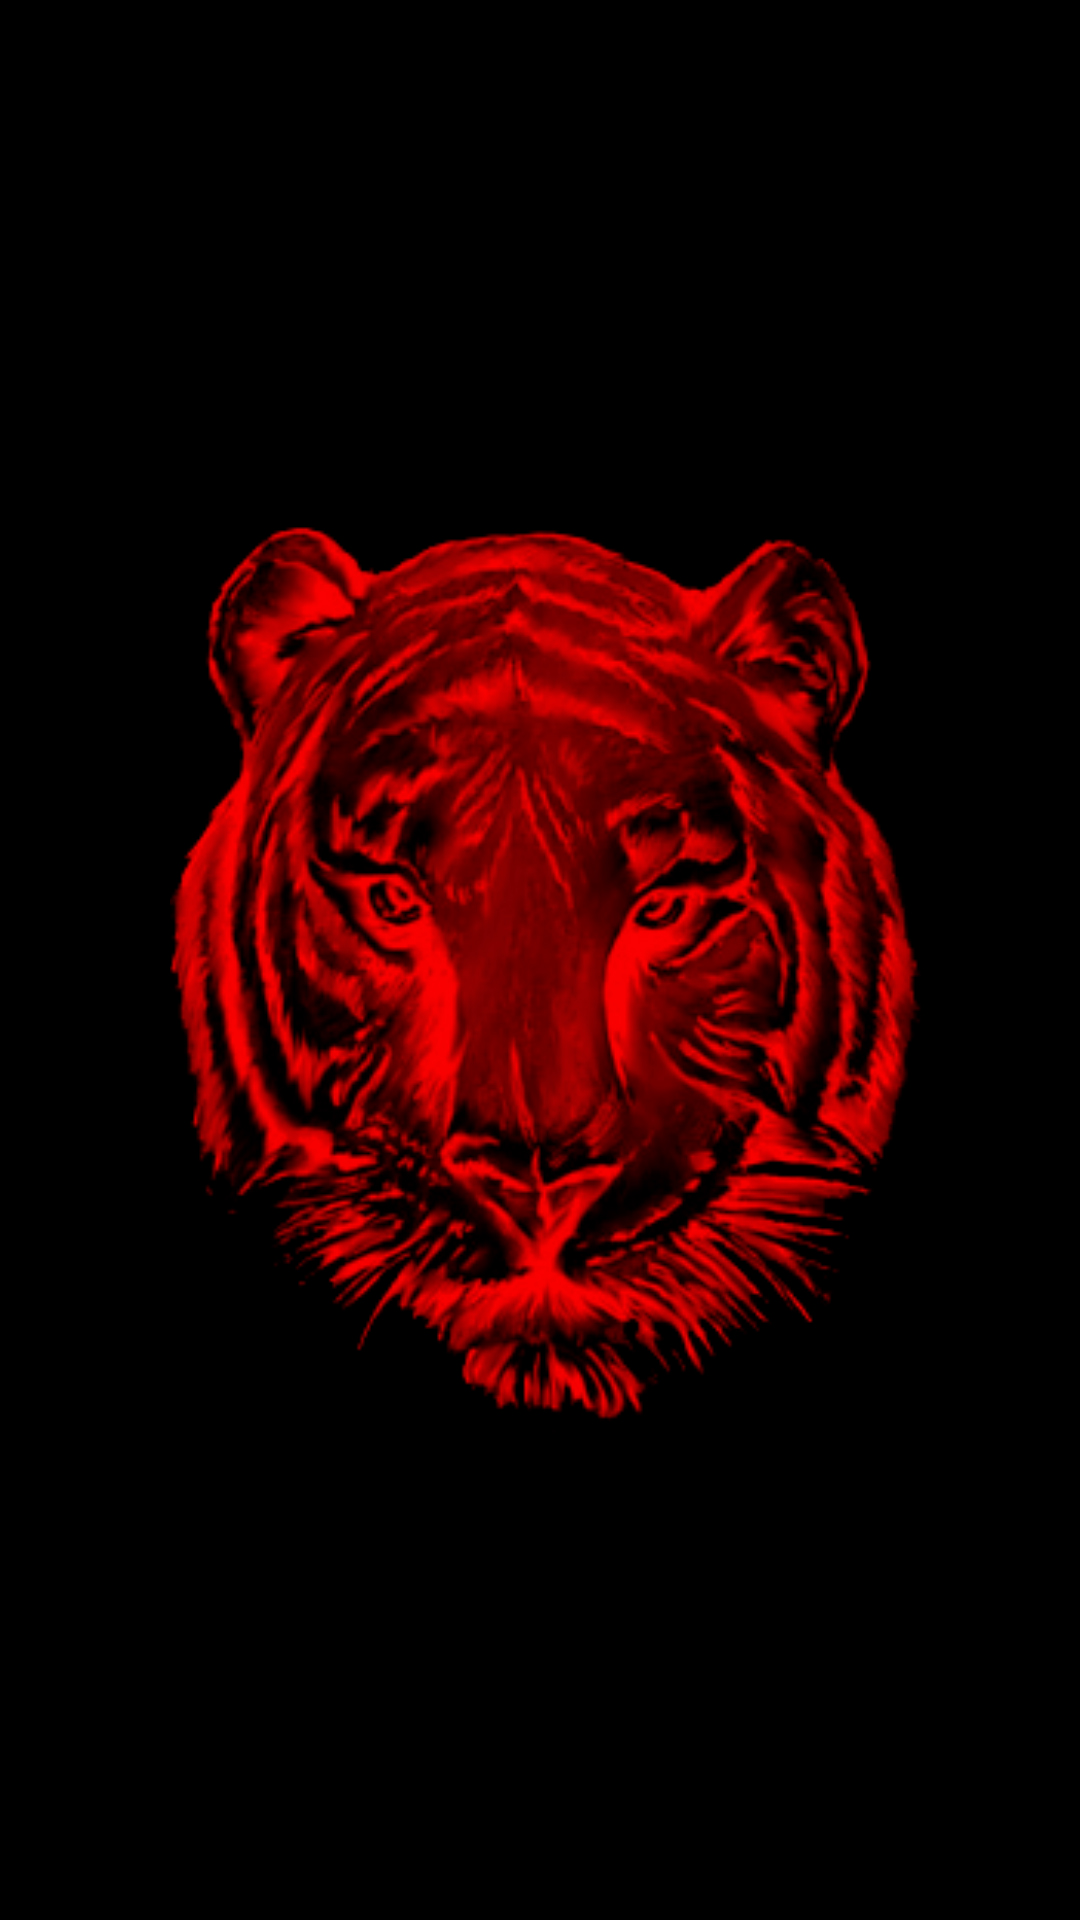 Minimalis Tiger Wallpaper